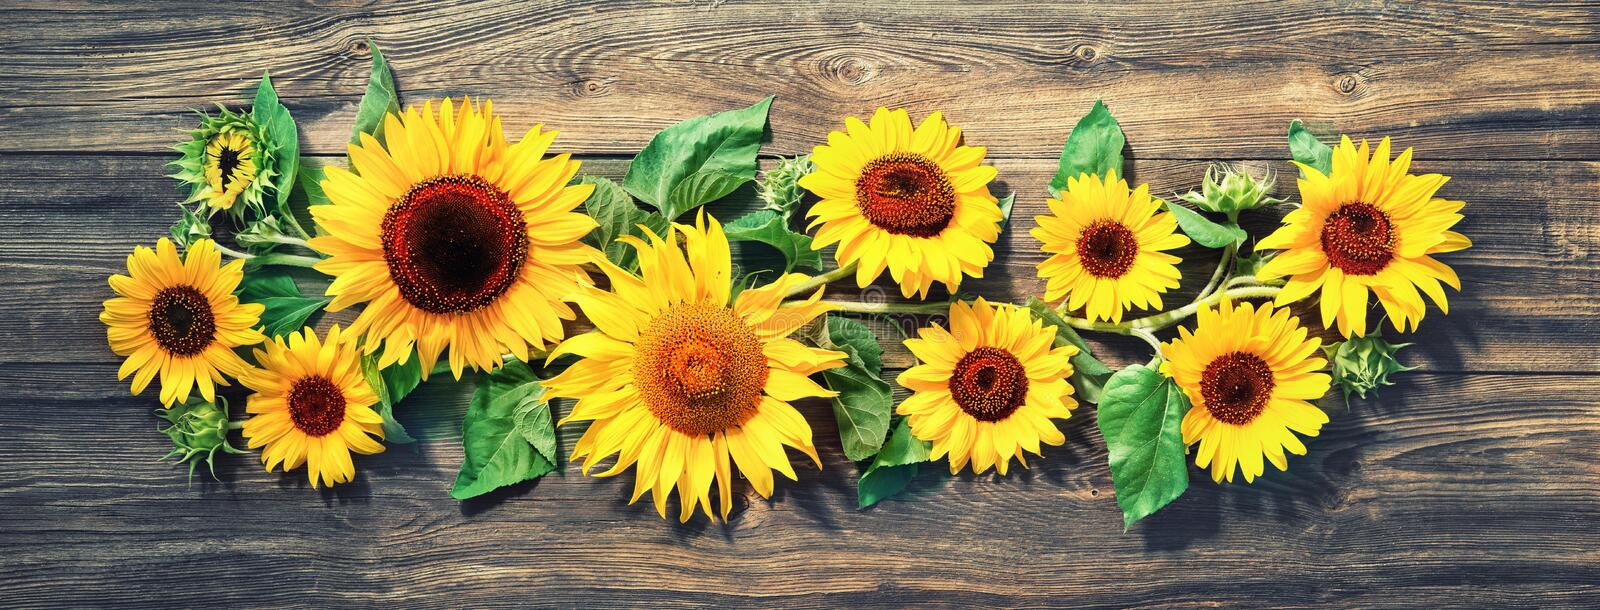 Sunflowers on wooden board royalty free stock images